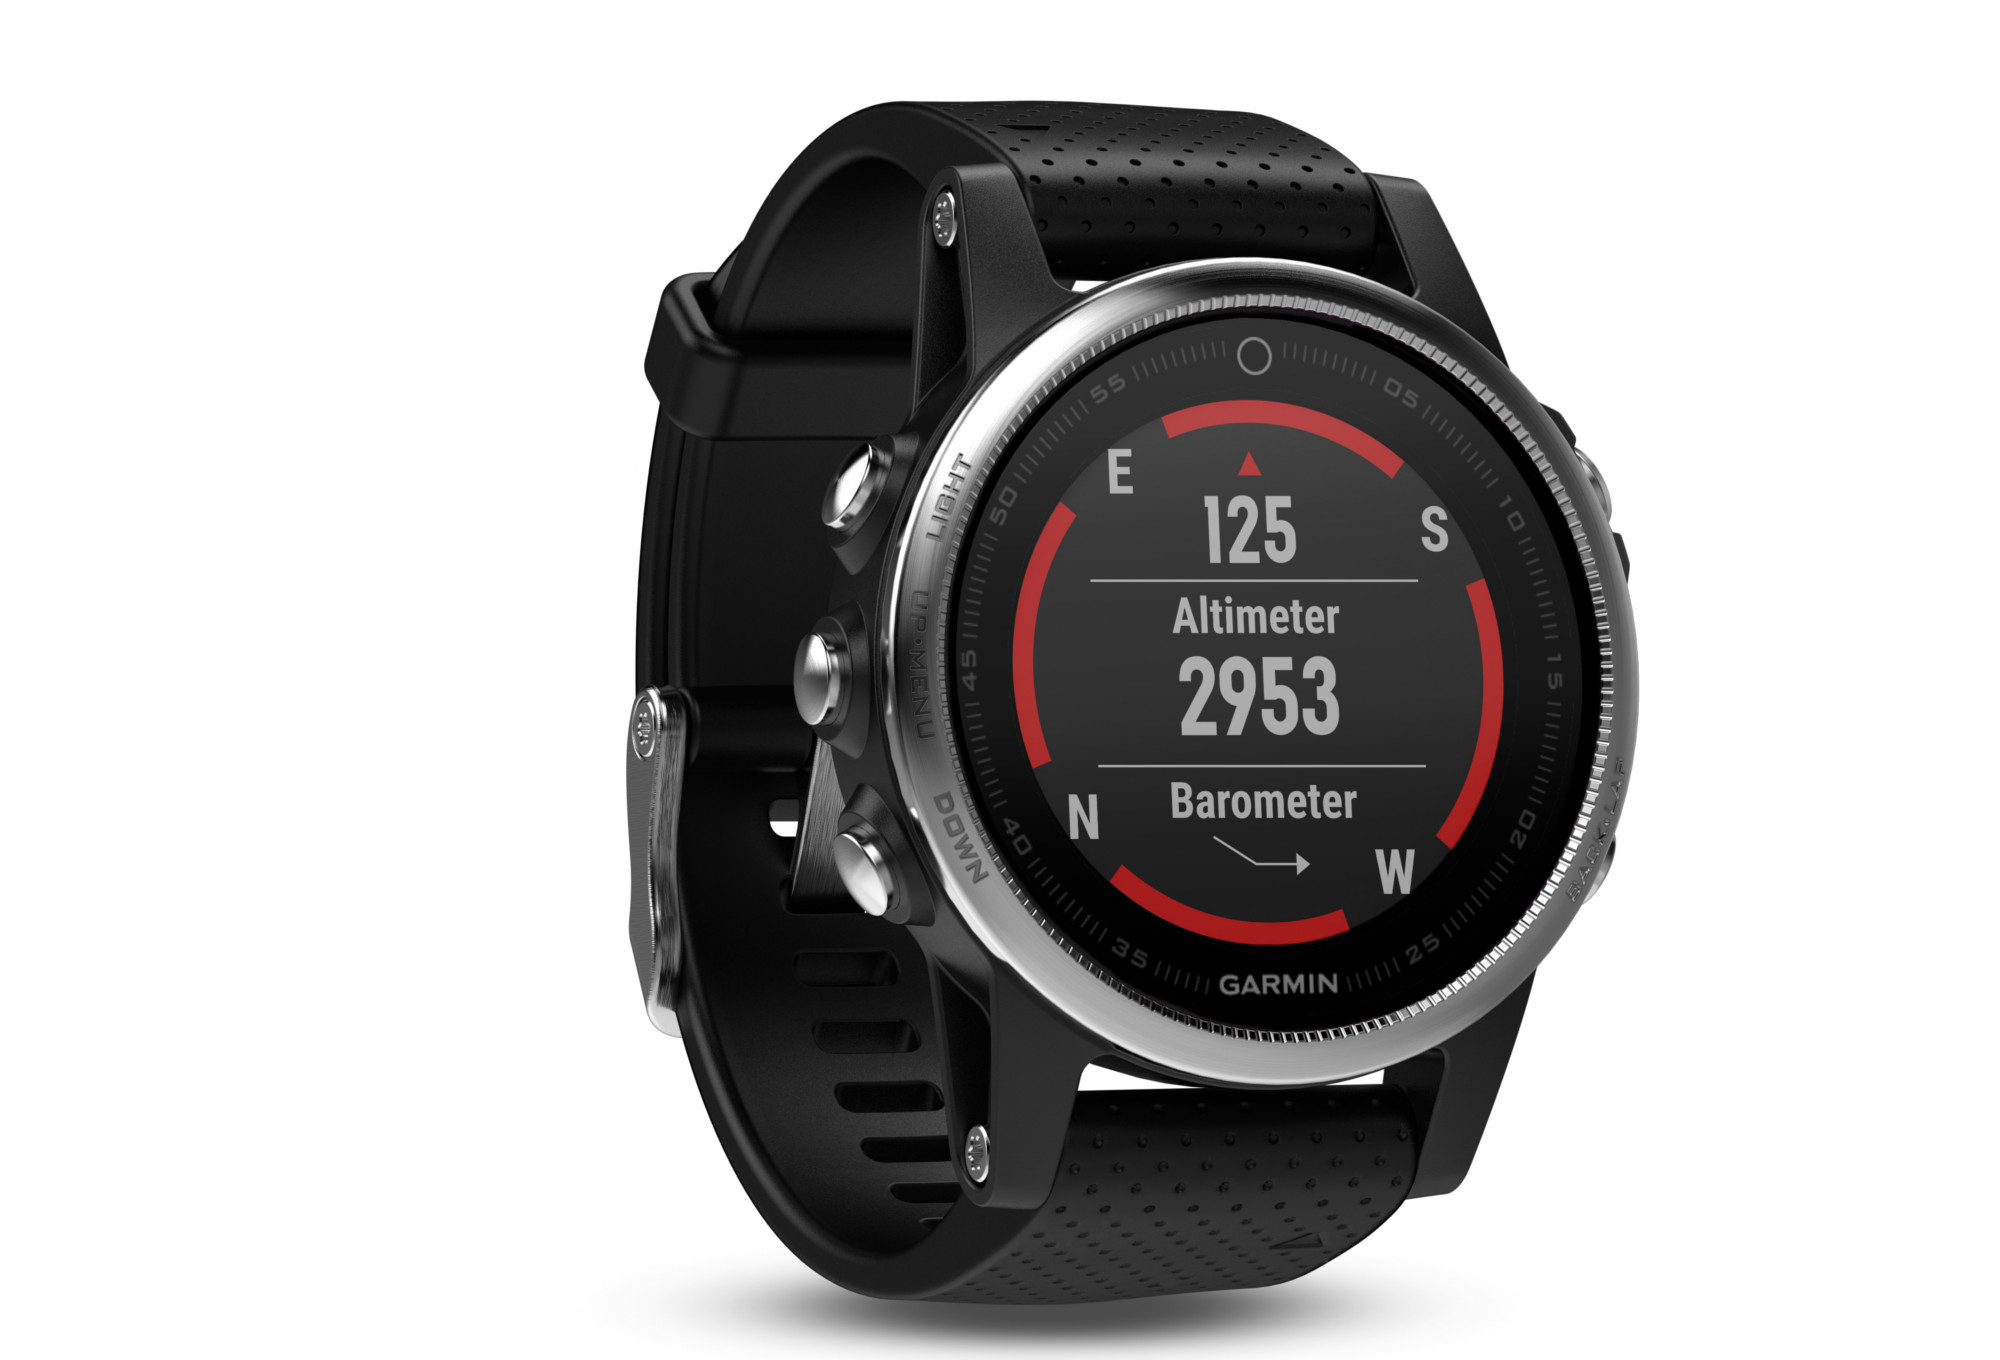 gps uhr garmin fenix 5s hr silber. Black Bedroom Furniture Sets. Home Design Ideas